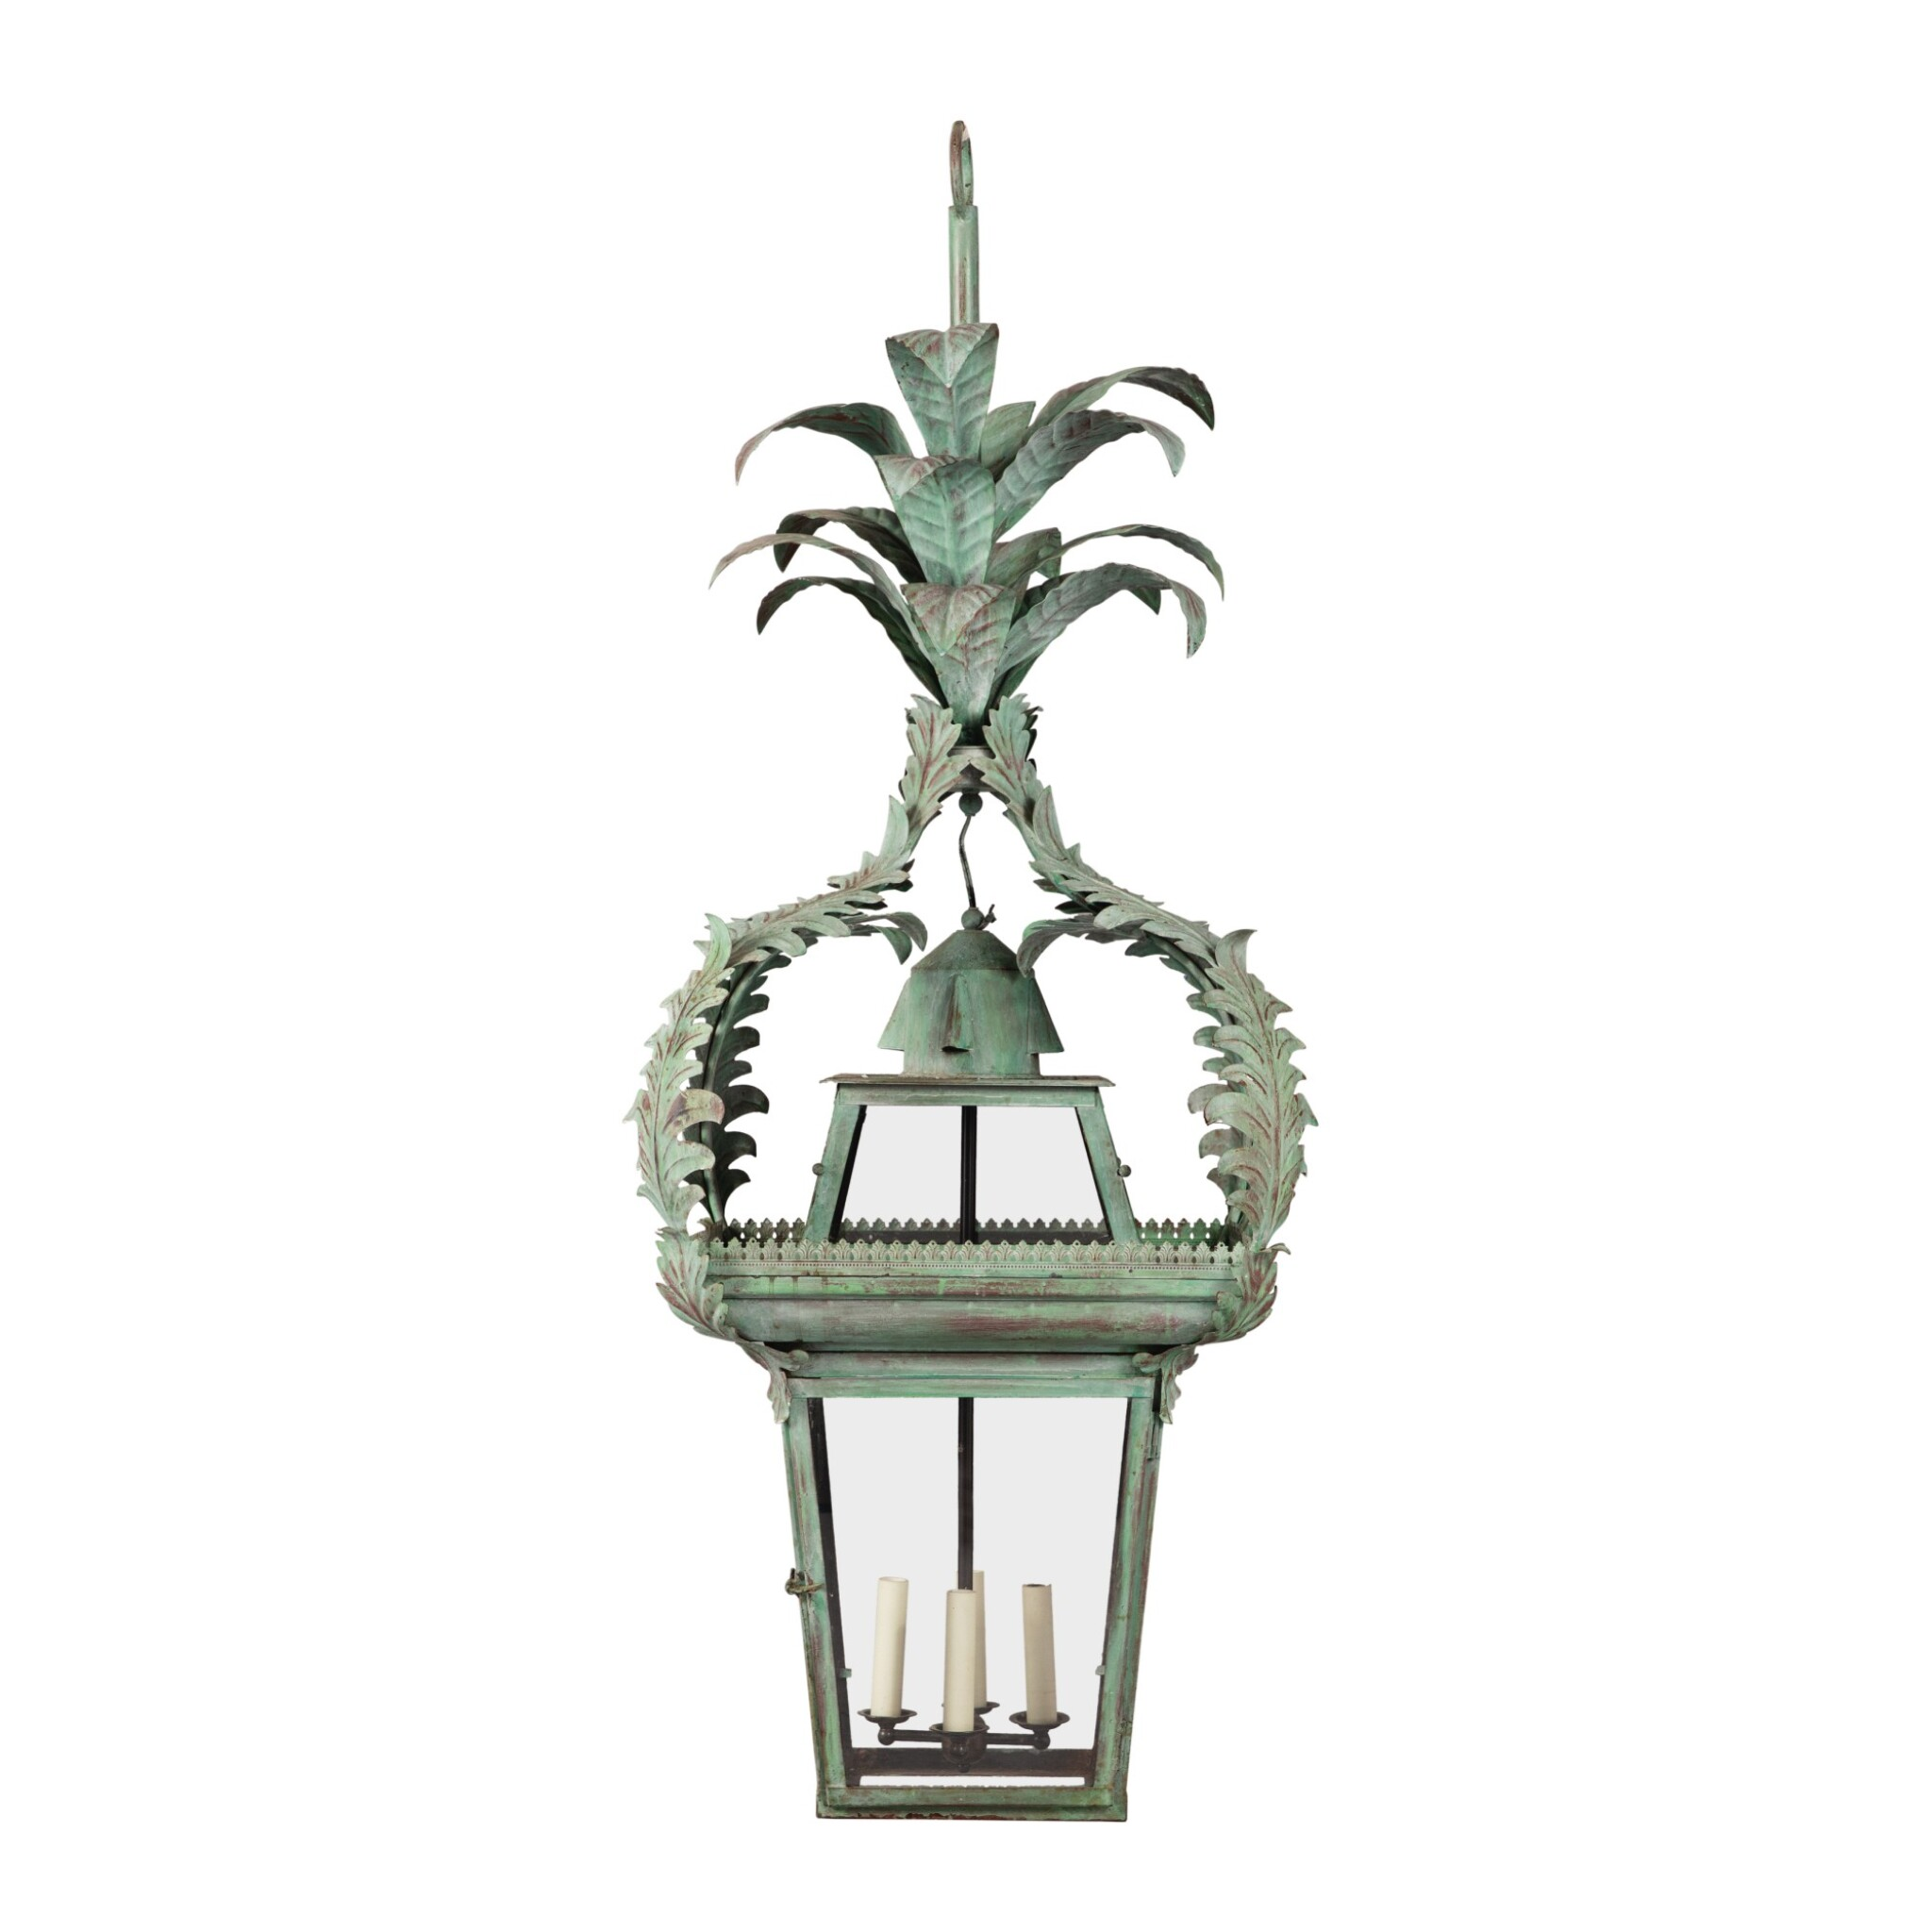 A LARGE GREEN-PAINTED TOLE AND GLASS HALL LANTERN, 20TH CENTURY